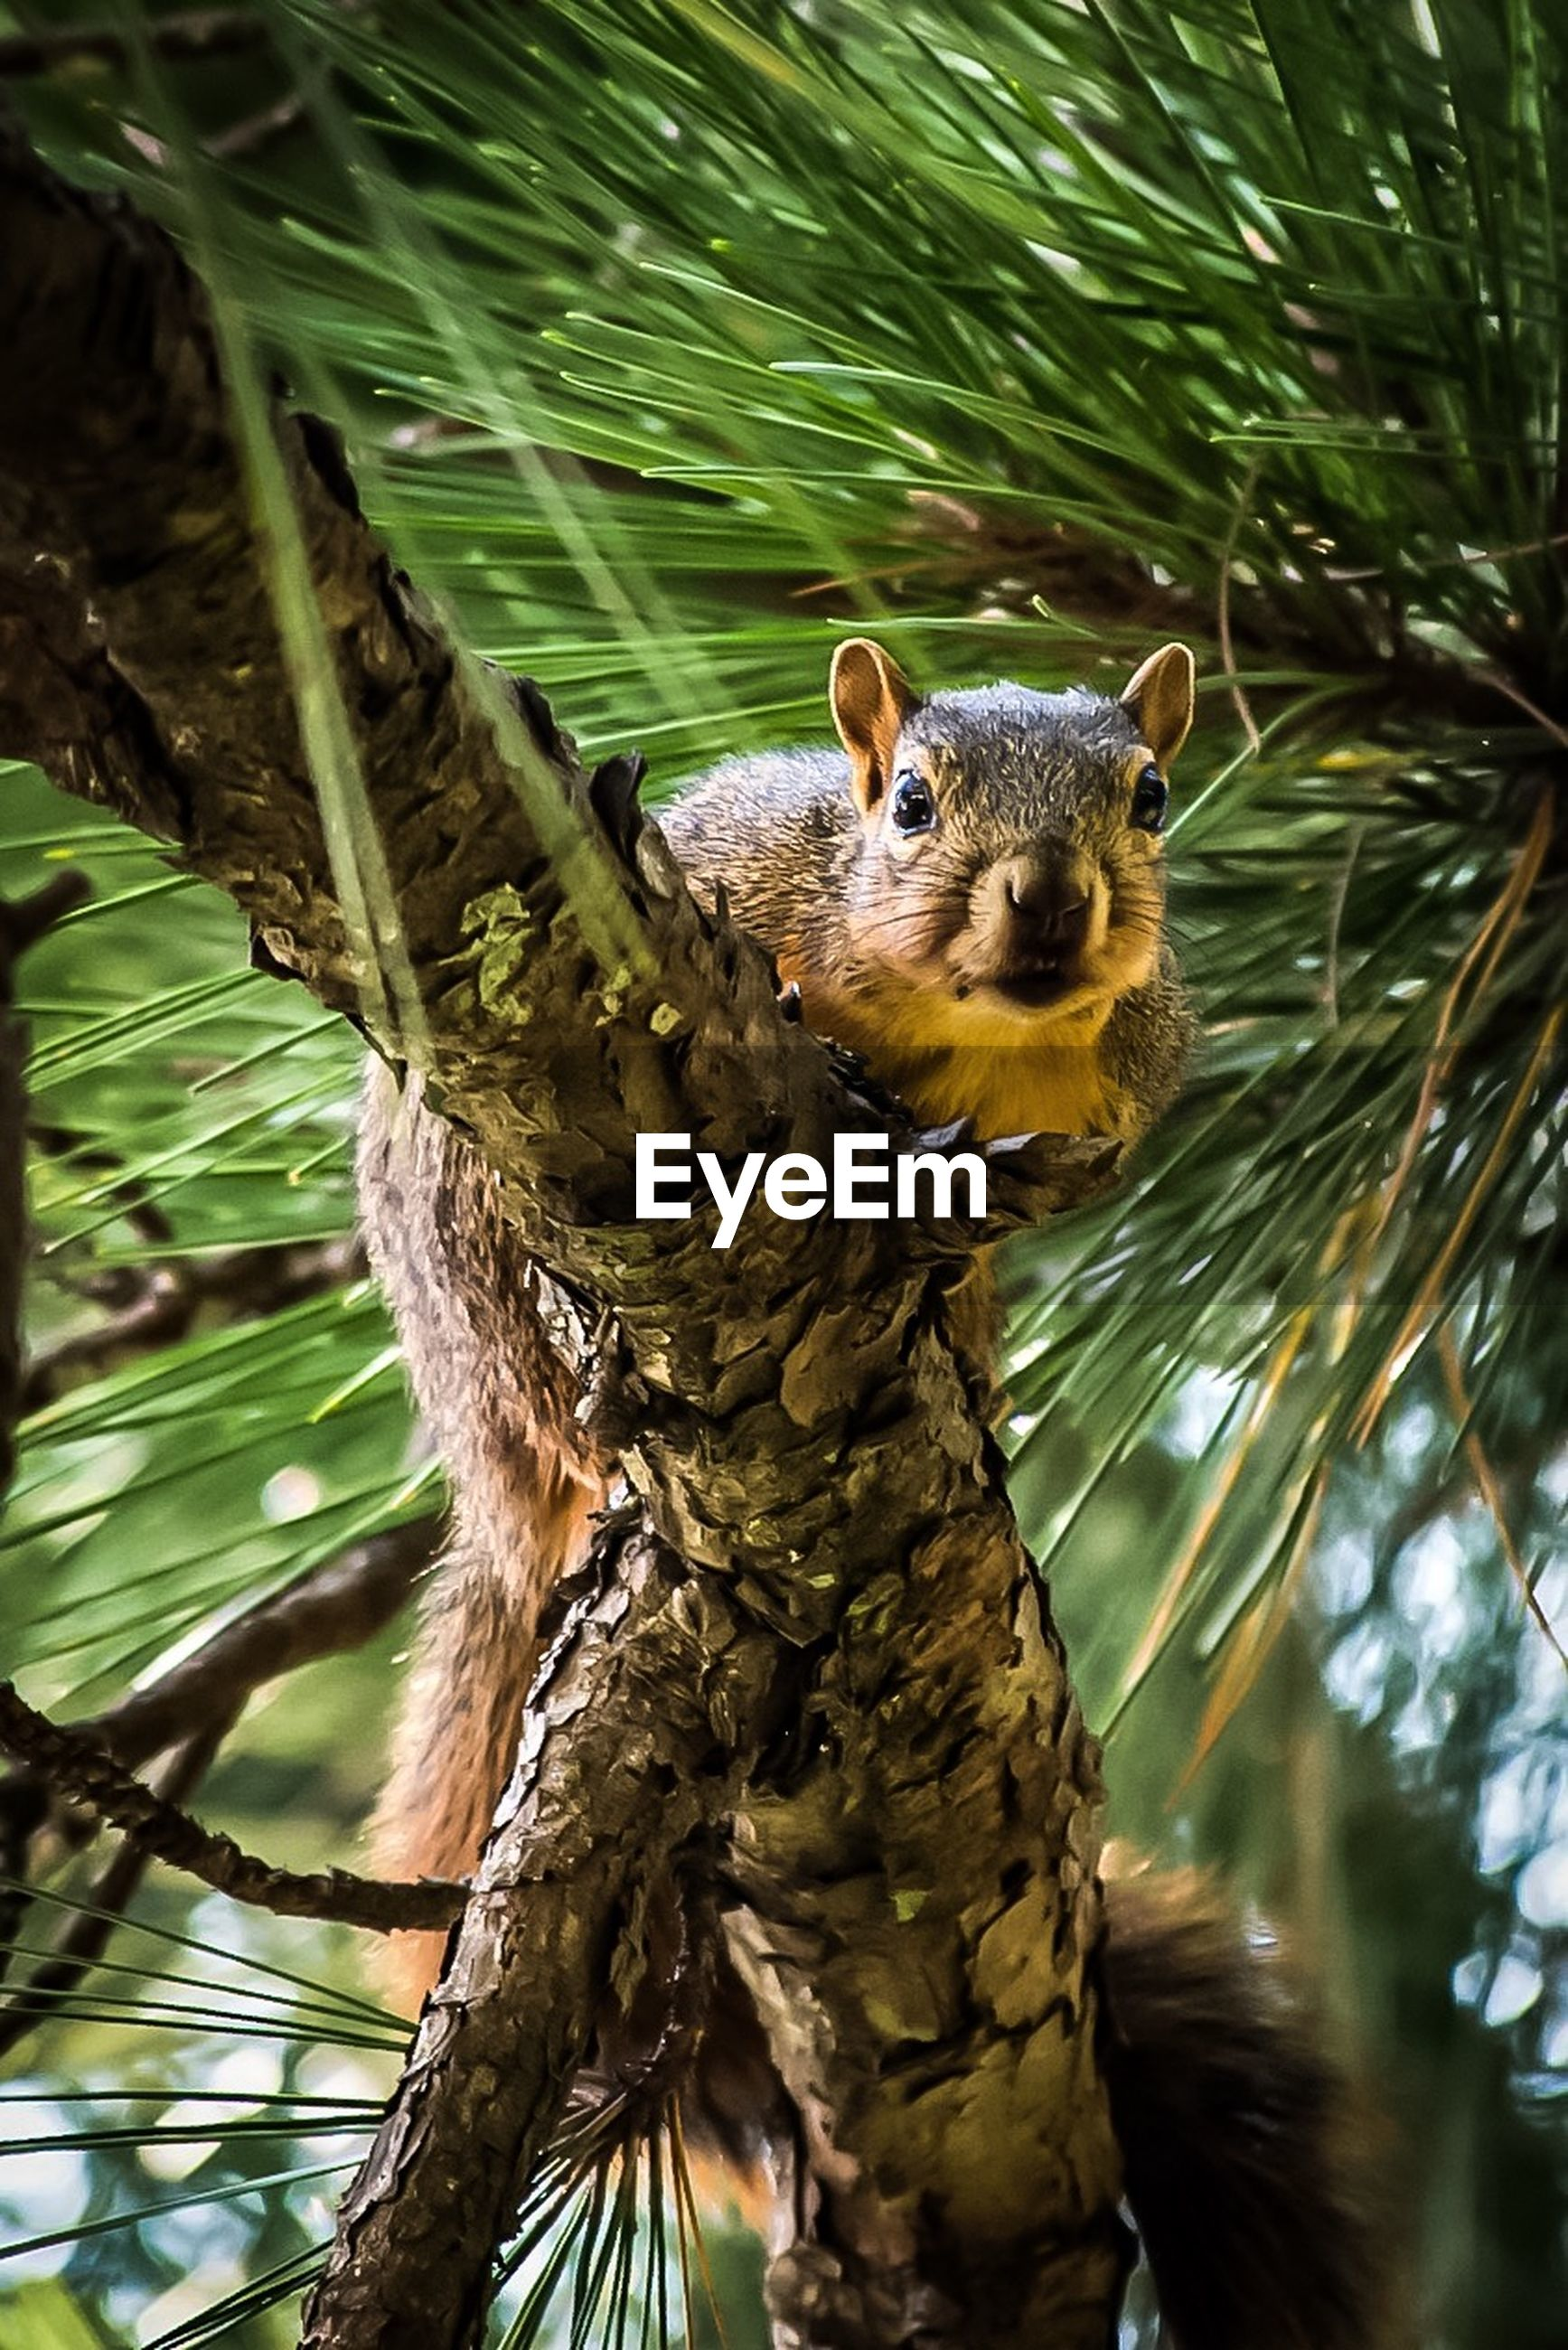 Low angle portrait of squirrel on branch